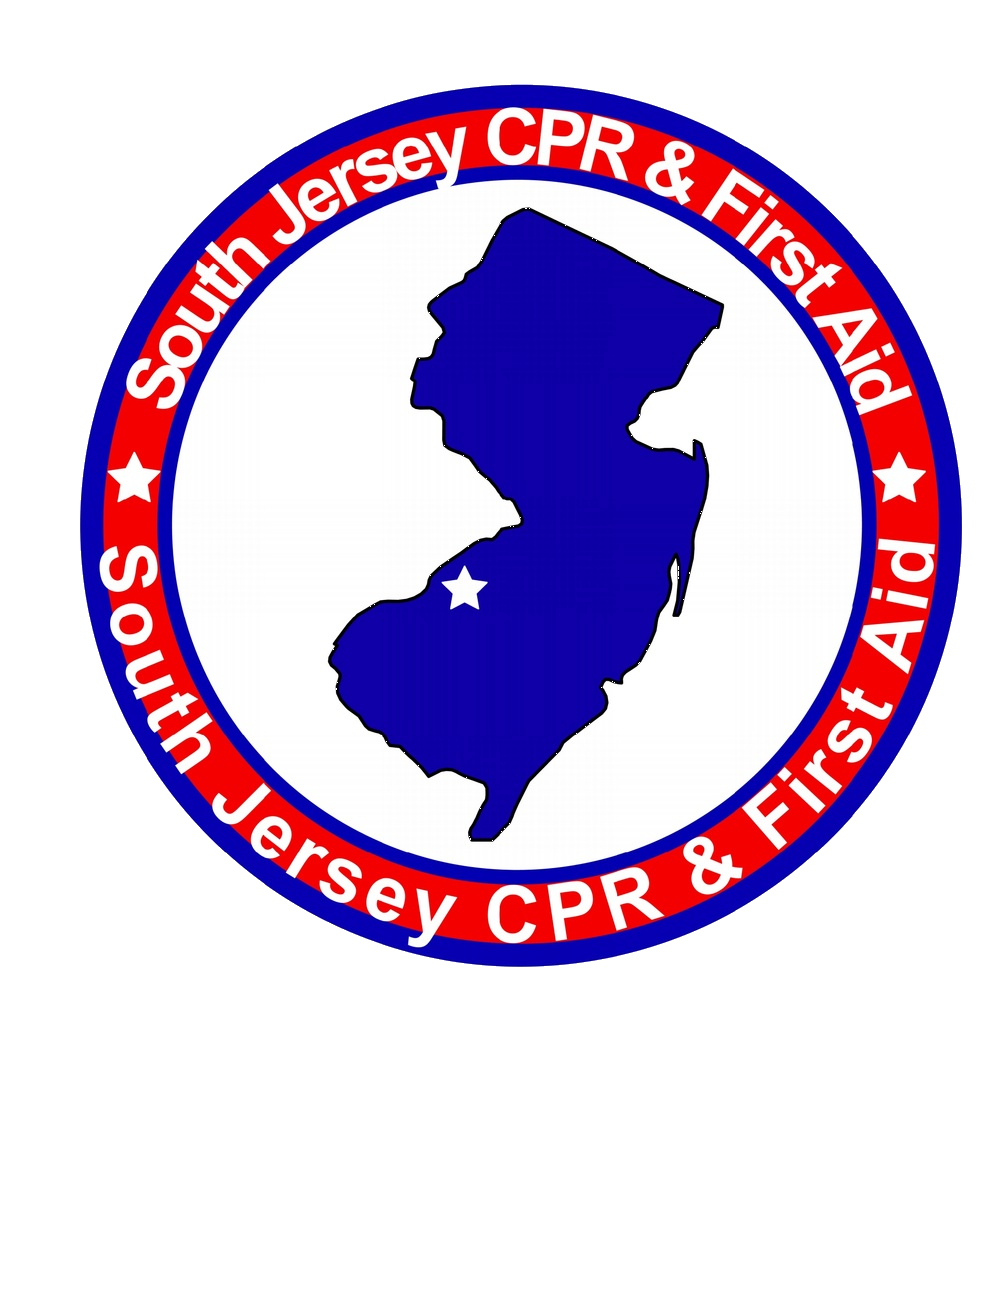 Southjerseycprandfirstaid